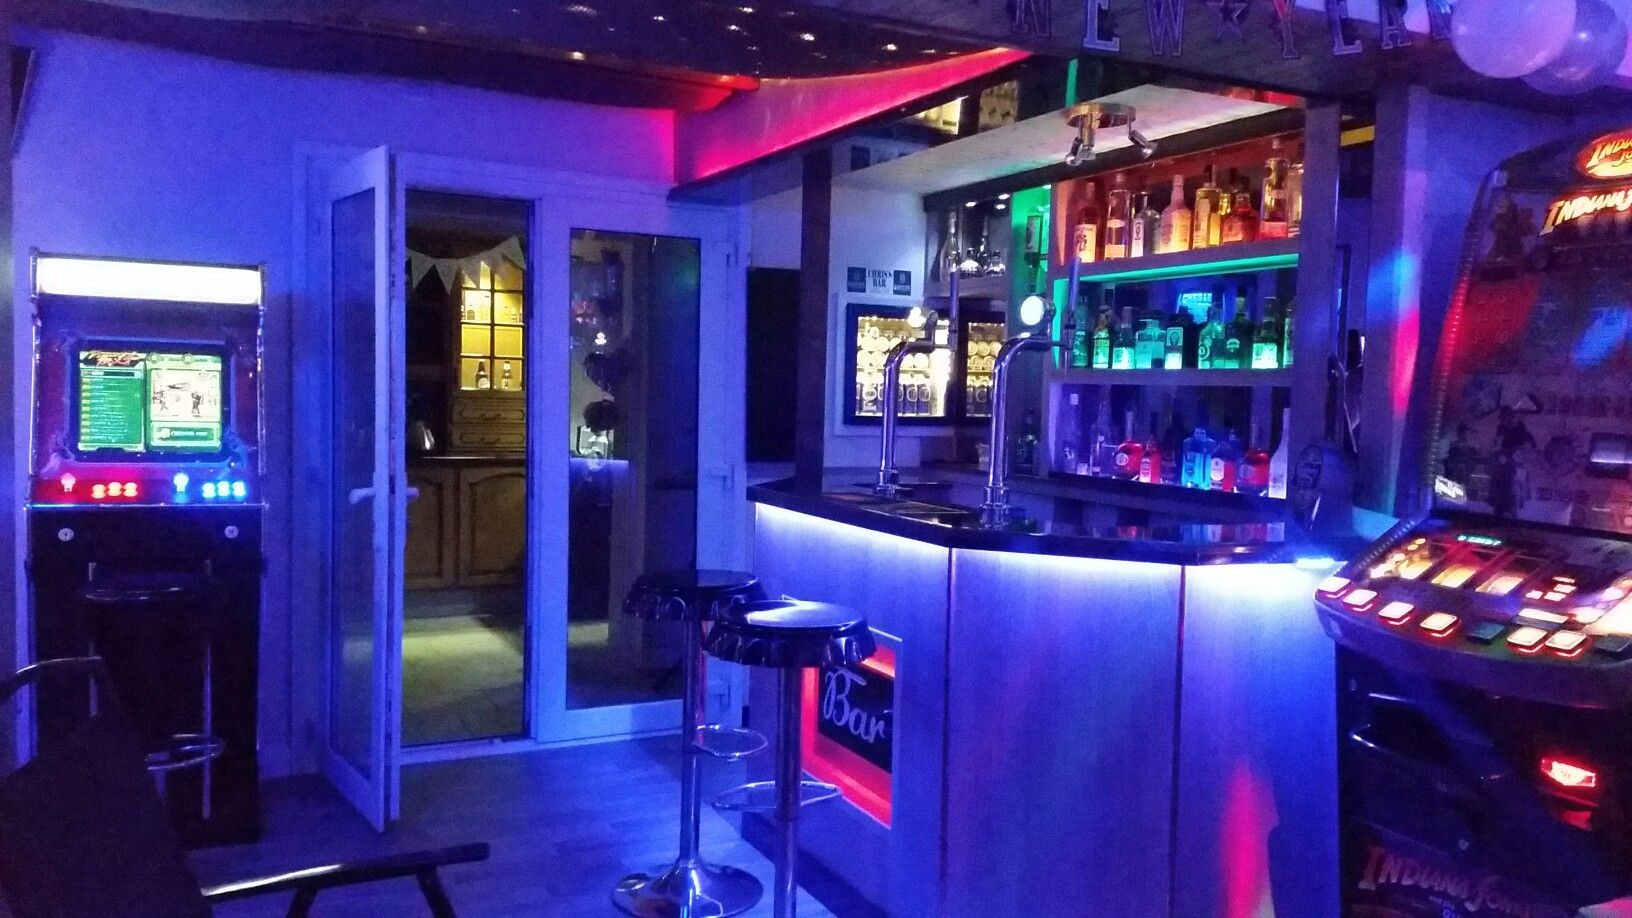 My Home Bar Man Cave With Led Lights Arcade Machine And Jukebox Running